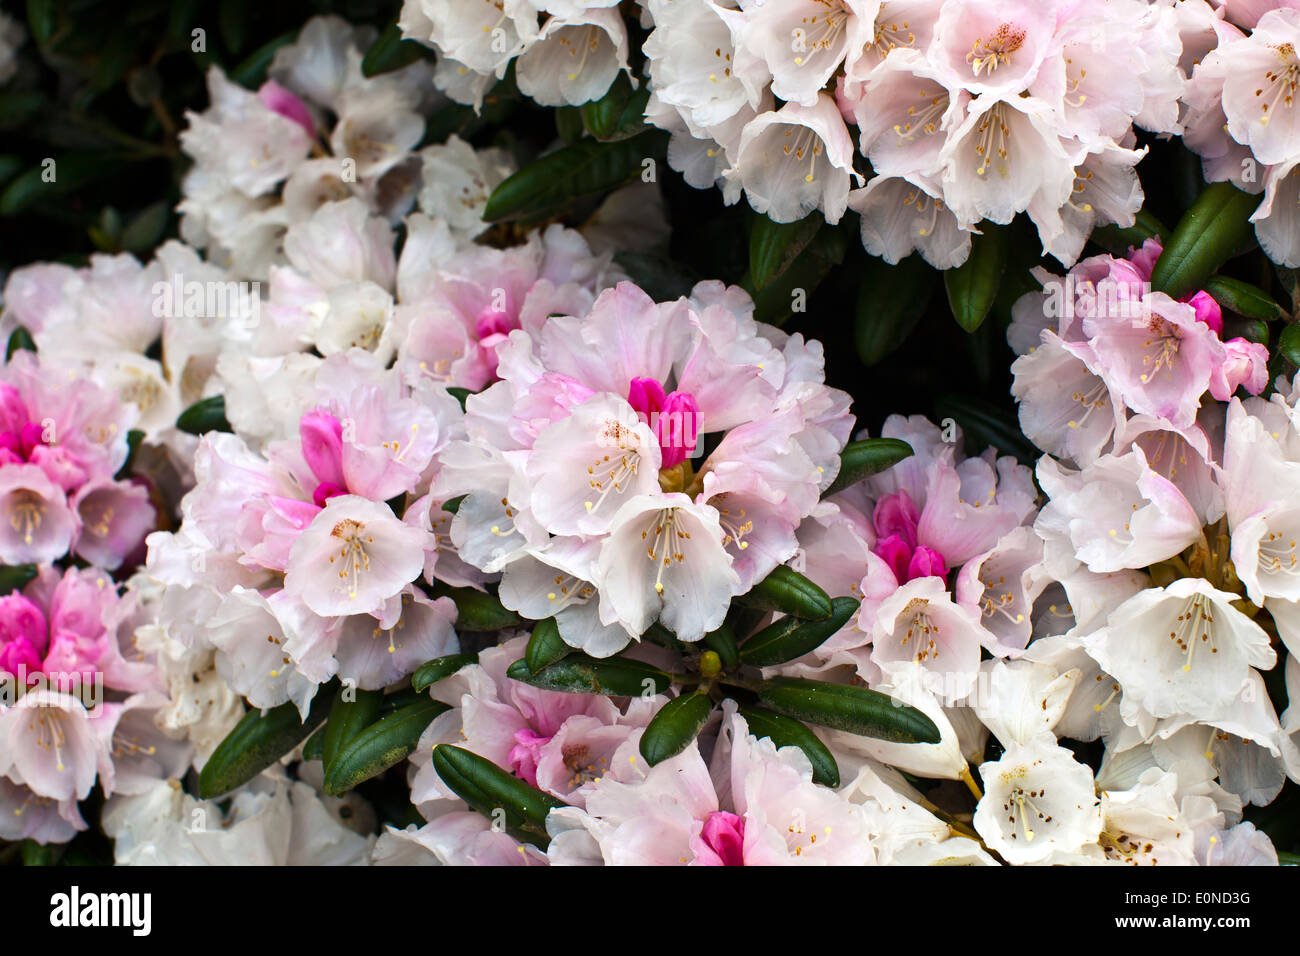 White and pink blush rhododendron flowers close-up. - Stock Image